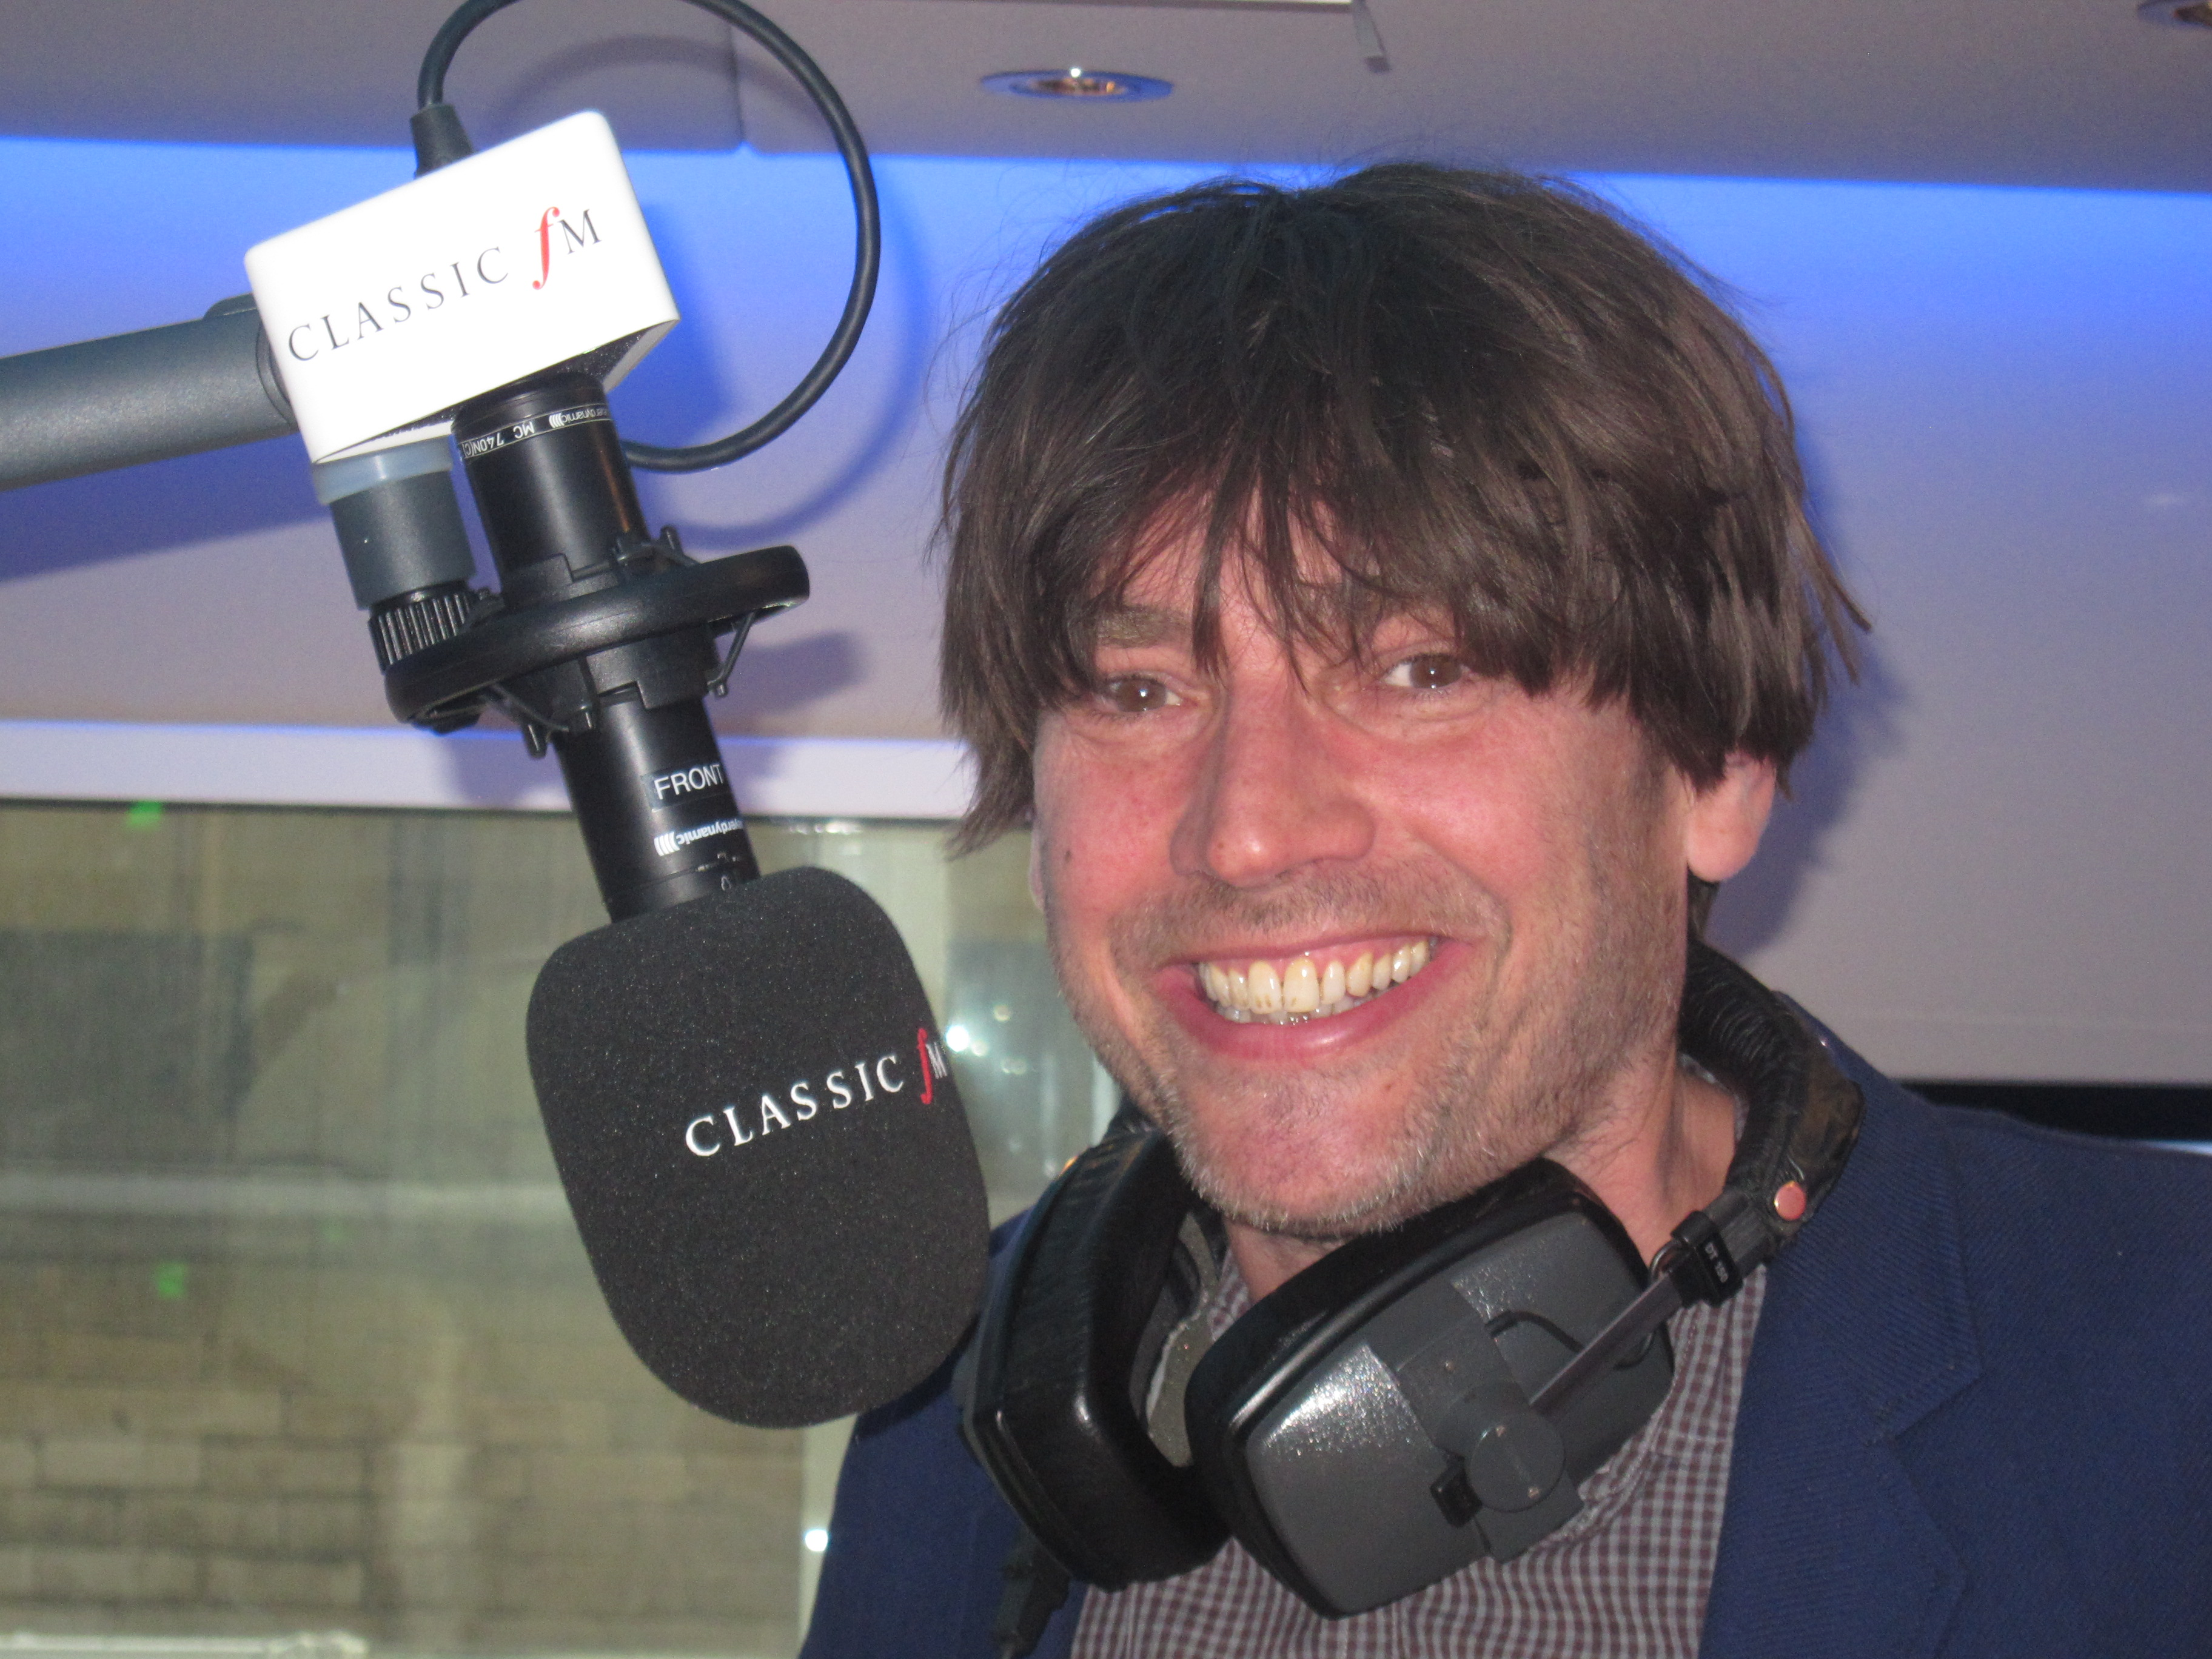 Alex James studio